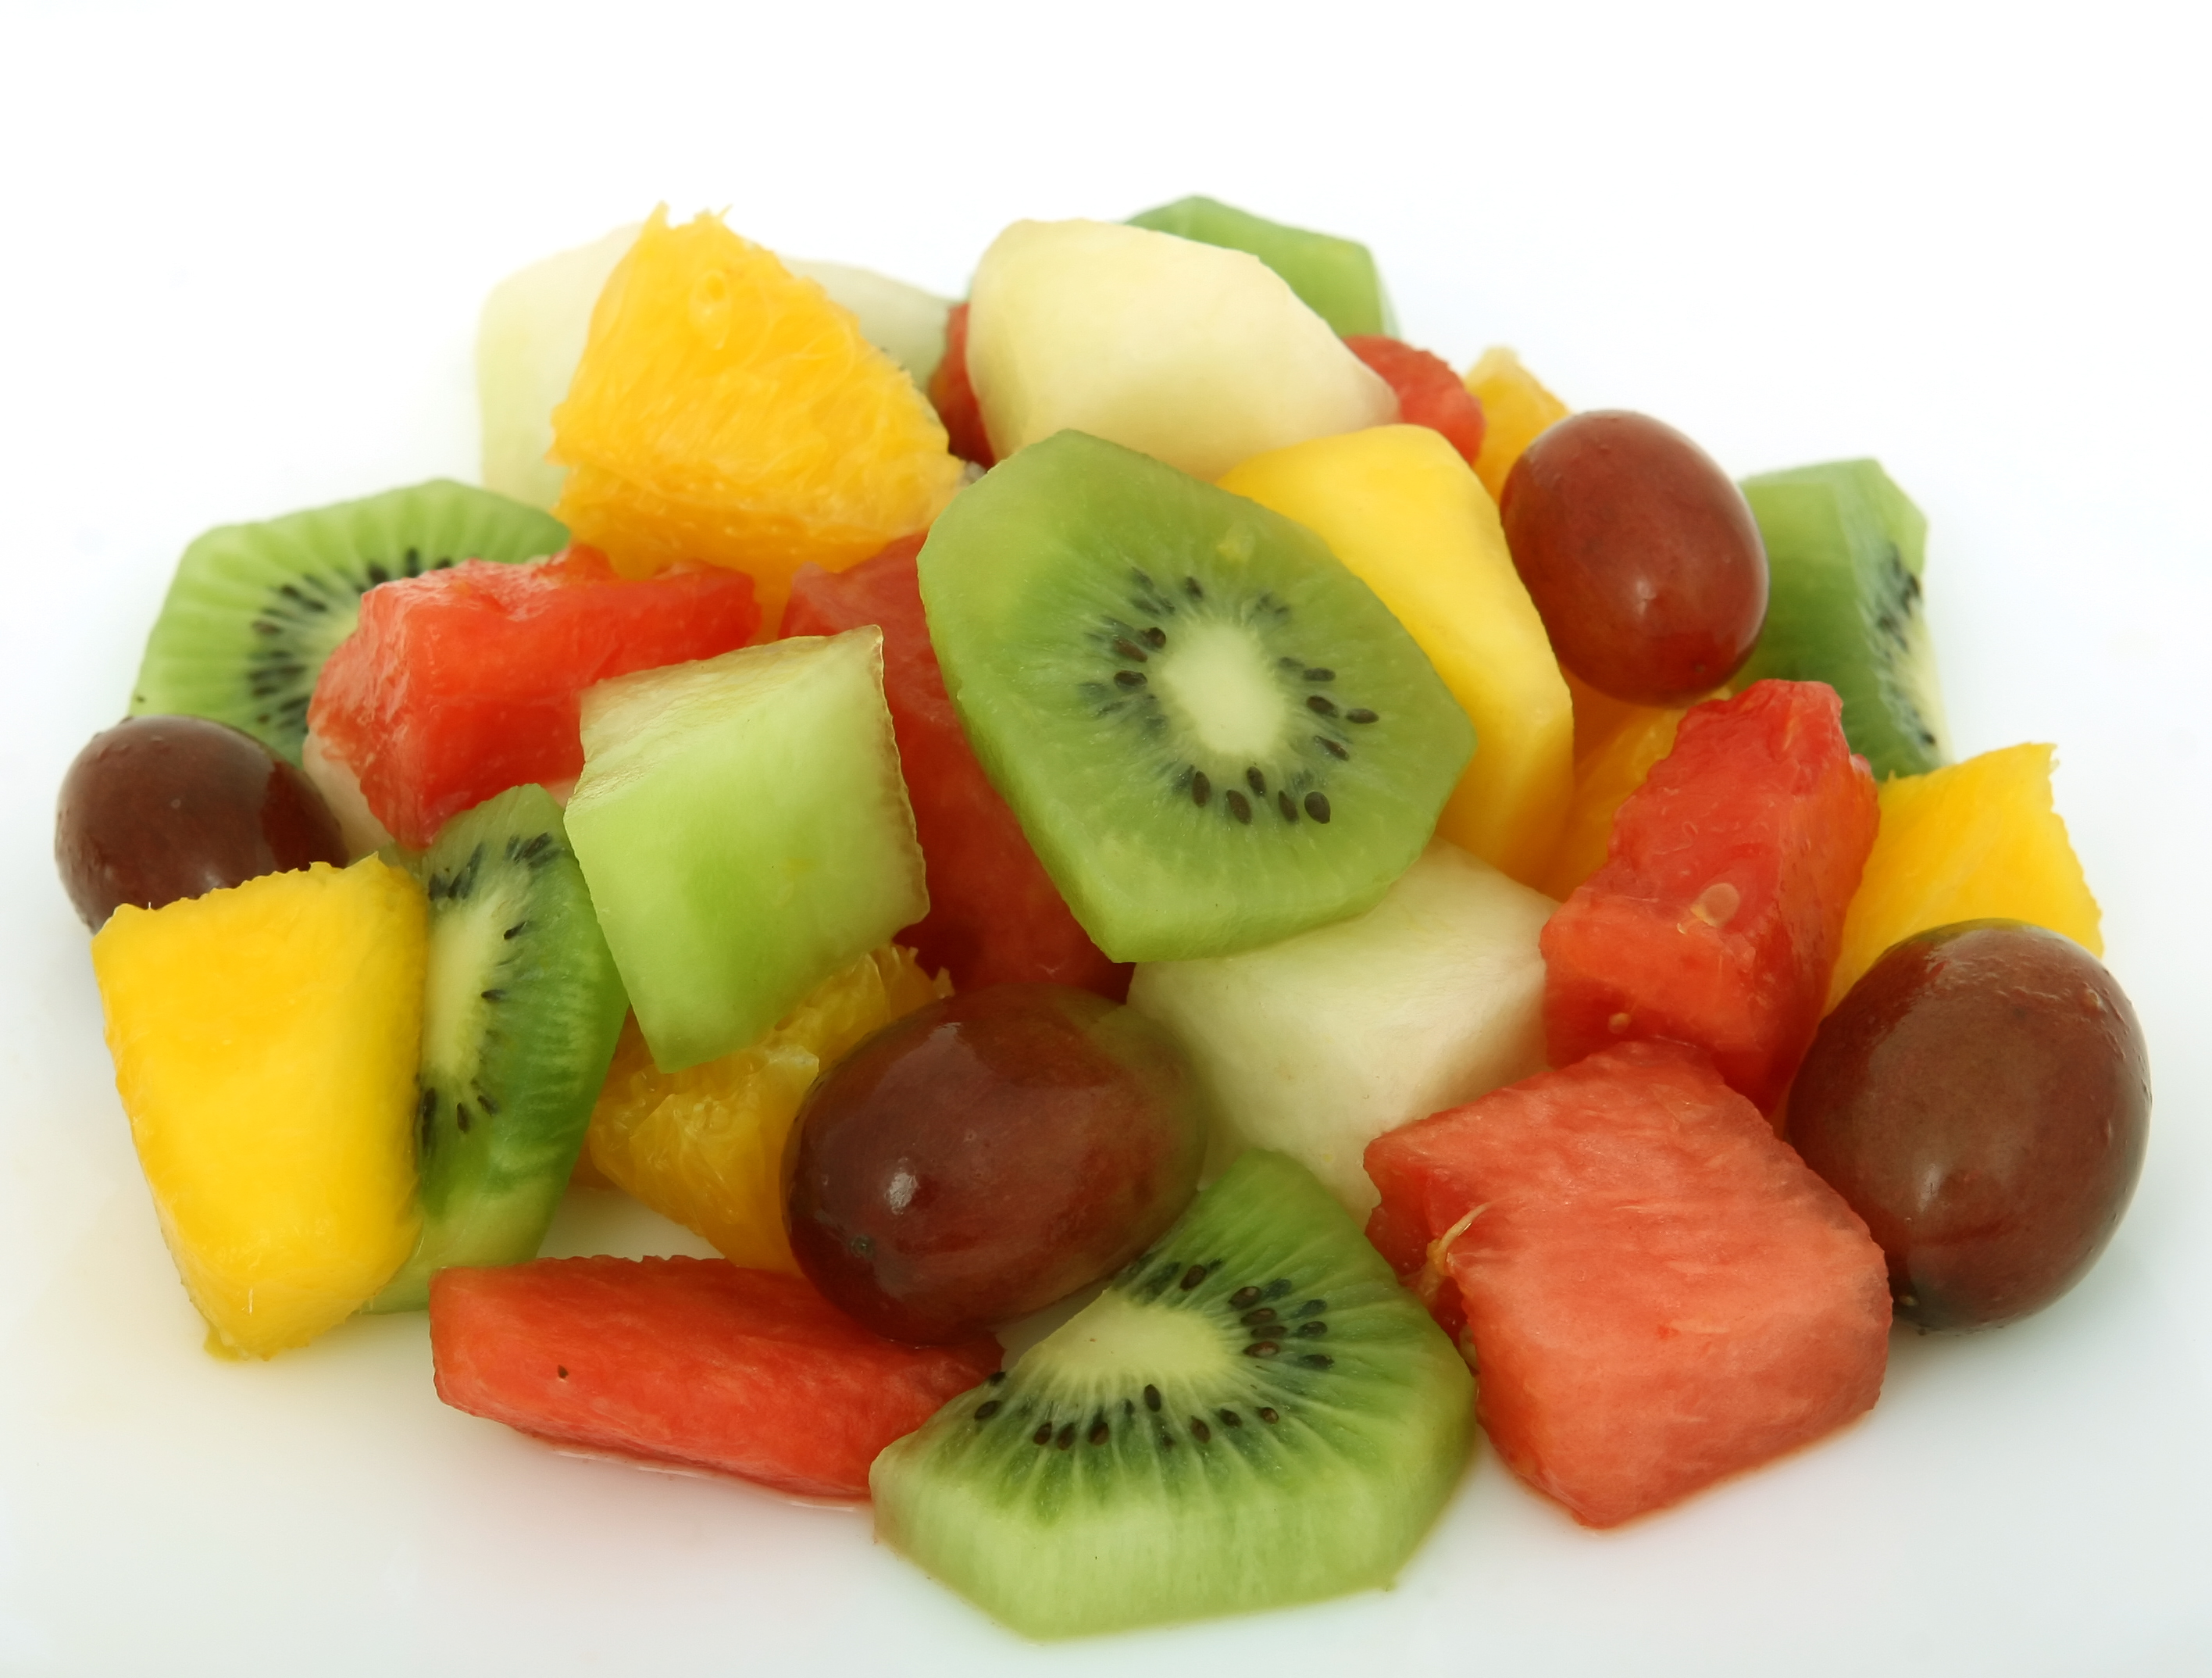 Fruit salad cocktail on a plate